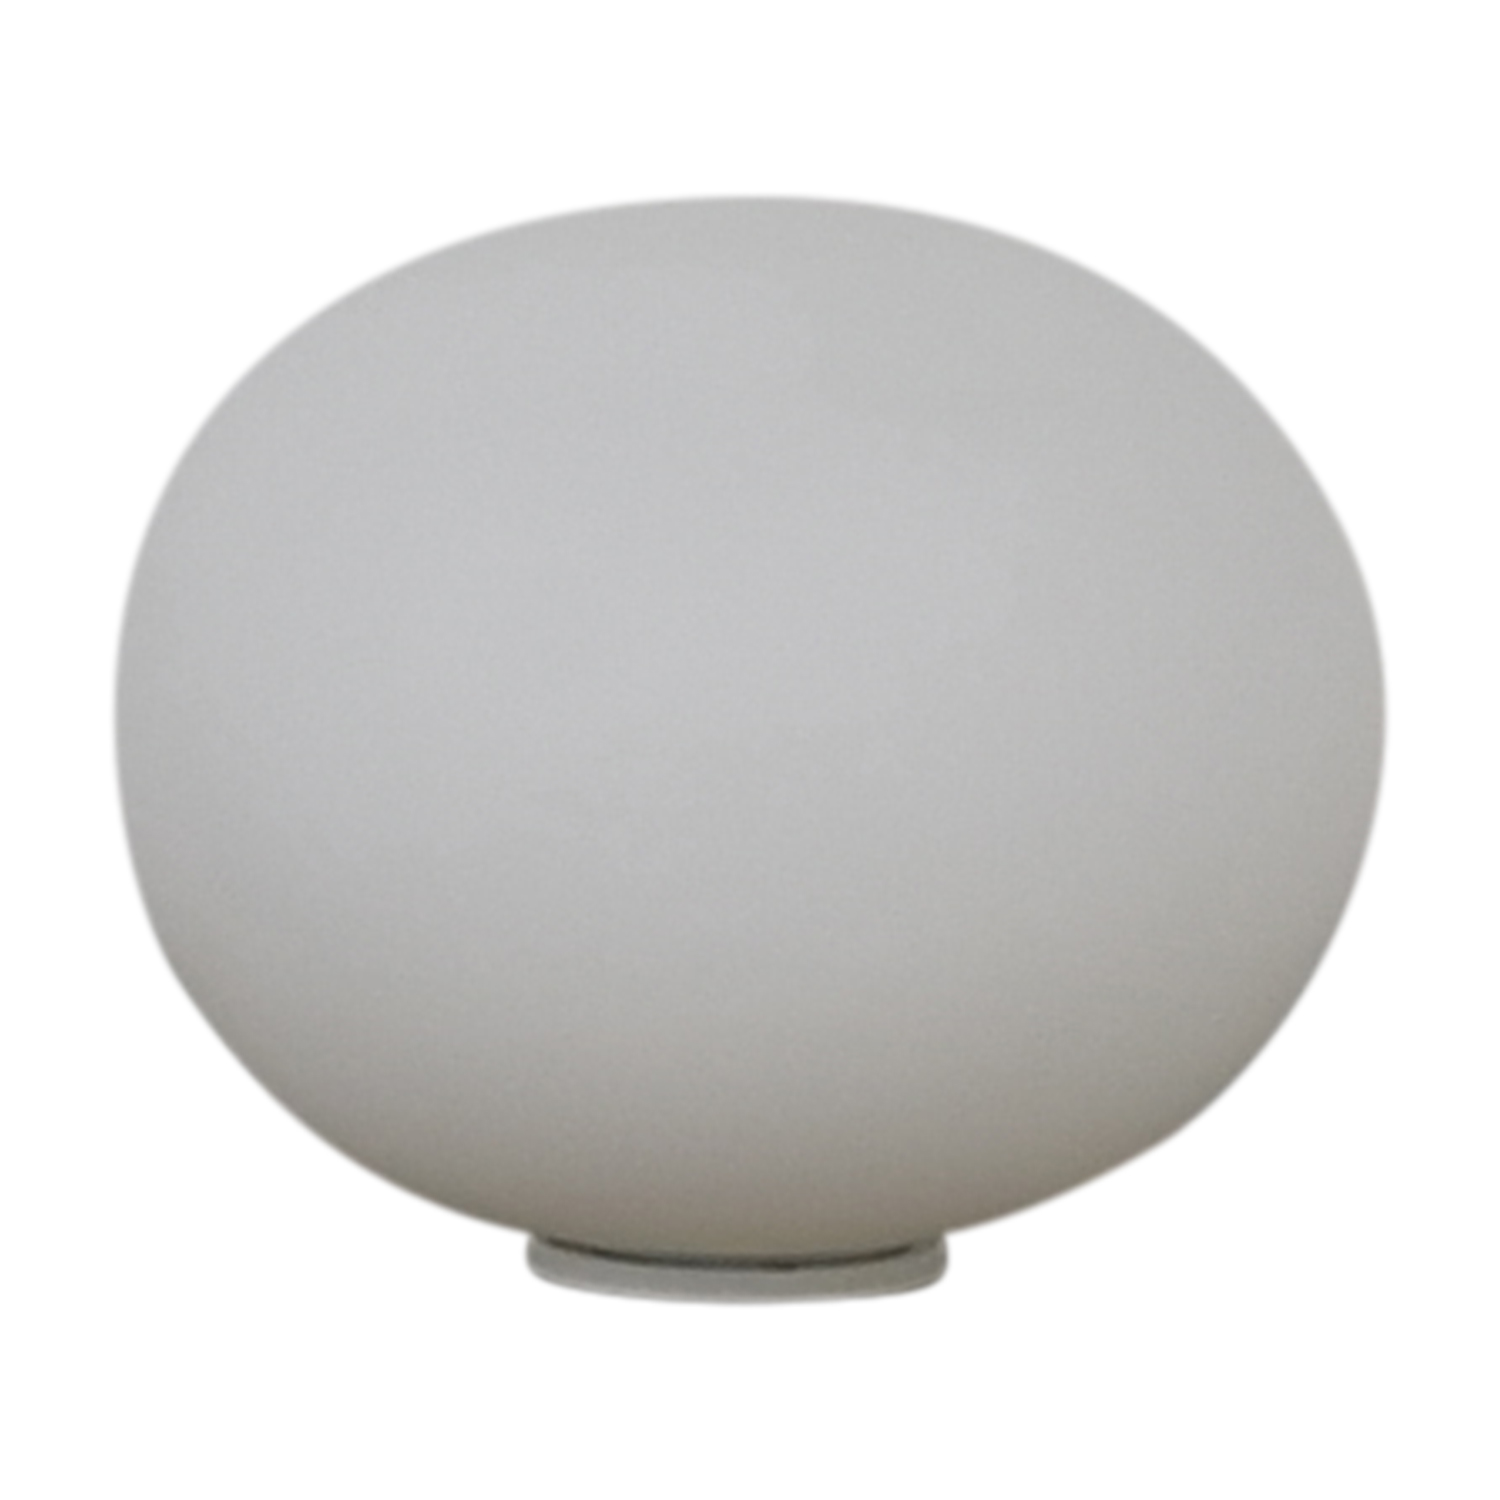 FLOS FLOS Glo-Ball Basic 1 Table Lamp for sale